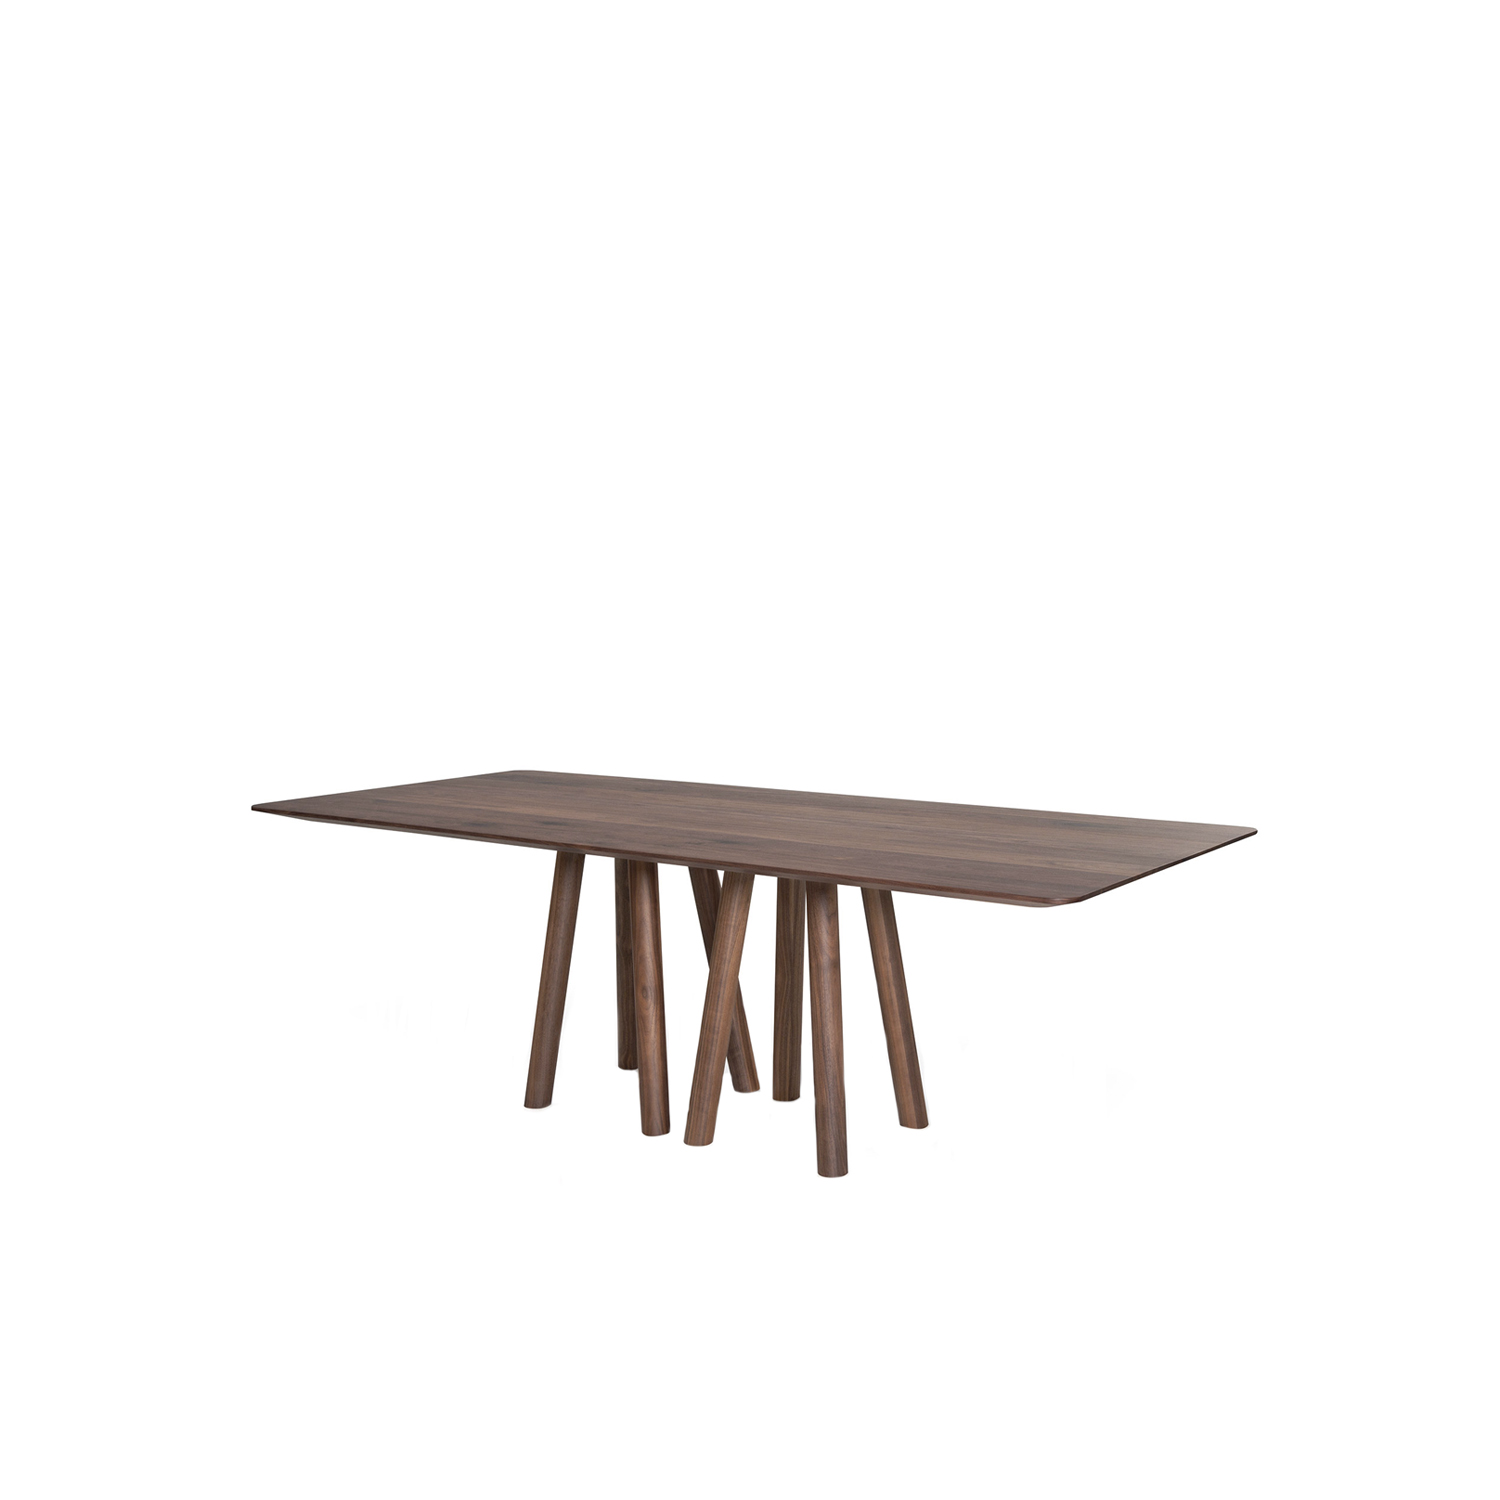 Mos-I-Ko 001 A Table - A table in various sizes with a rectangular shaped top with and thin